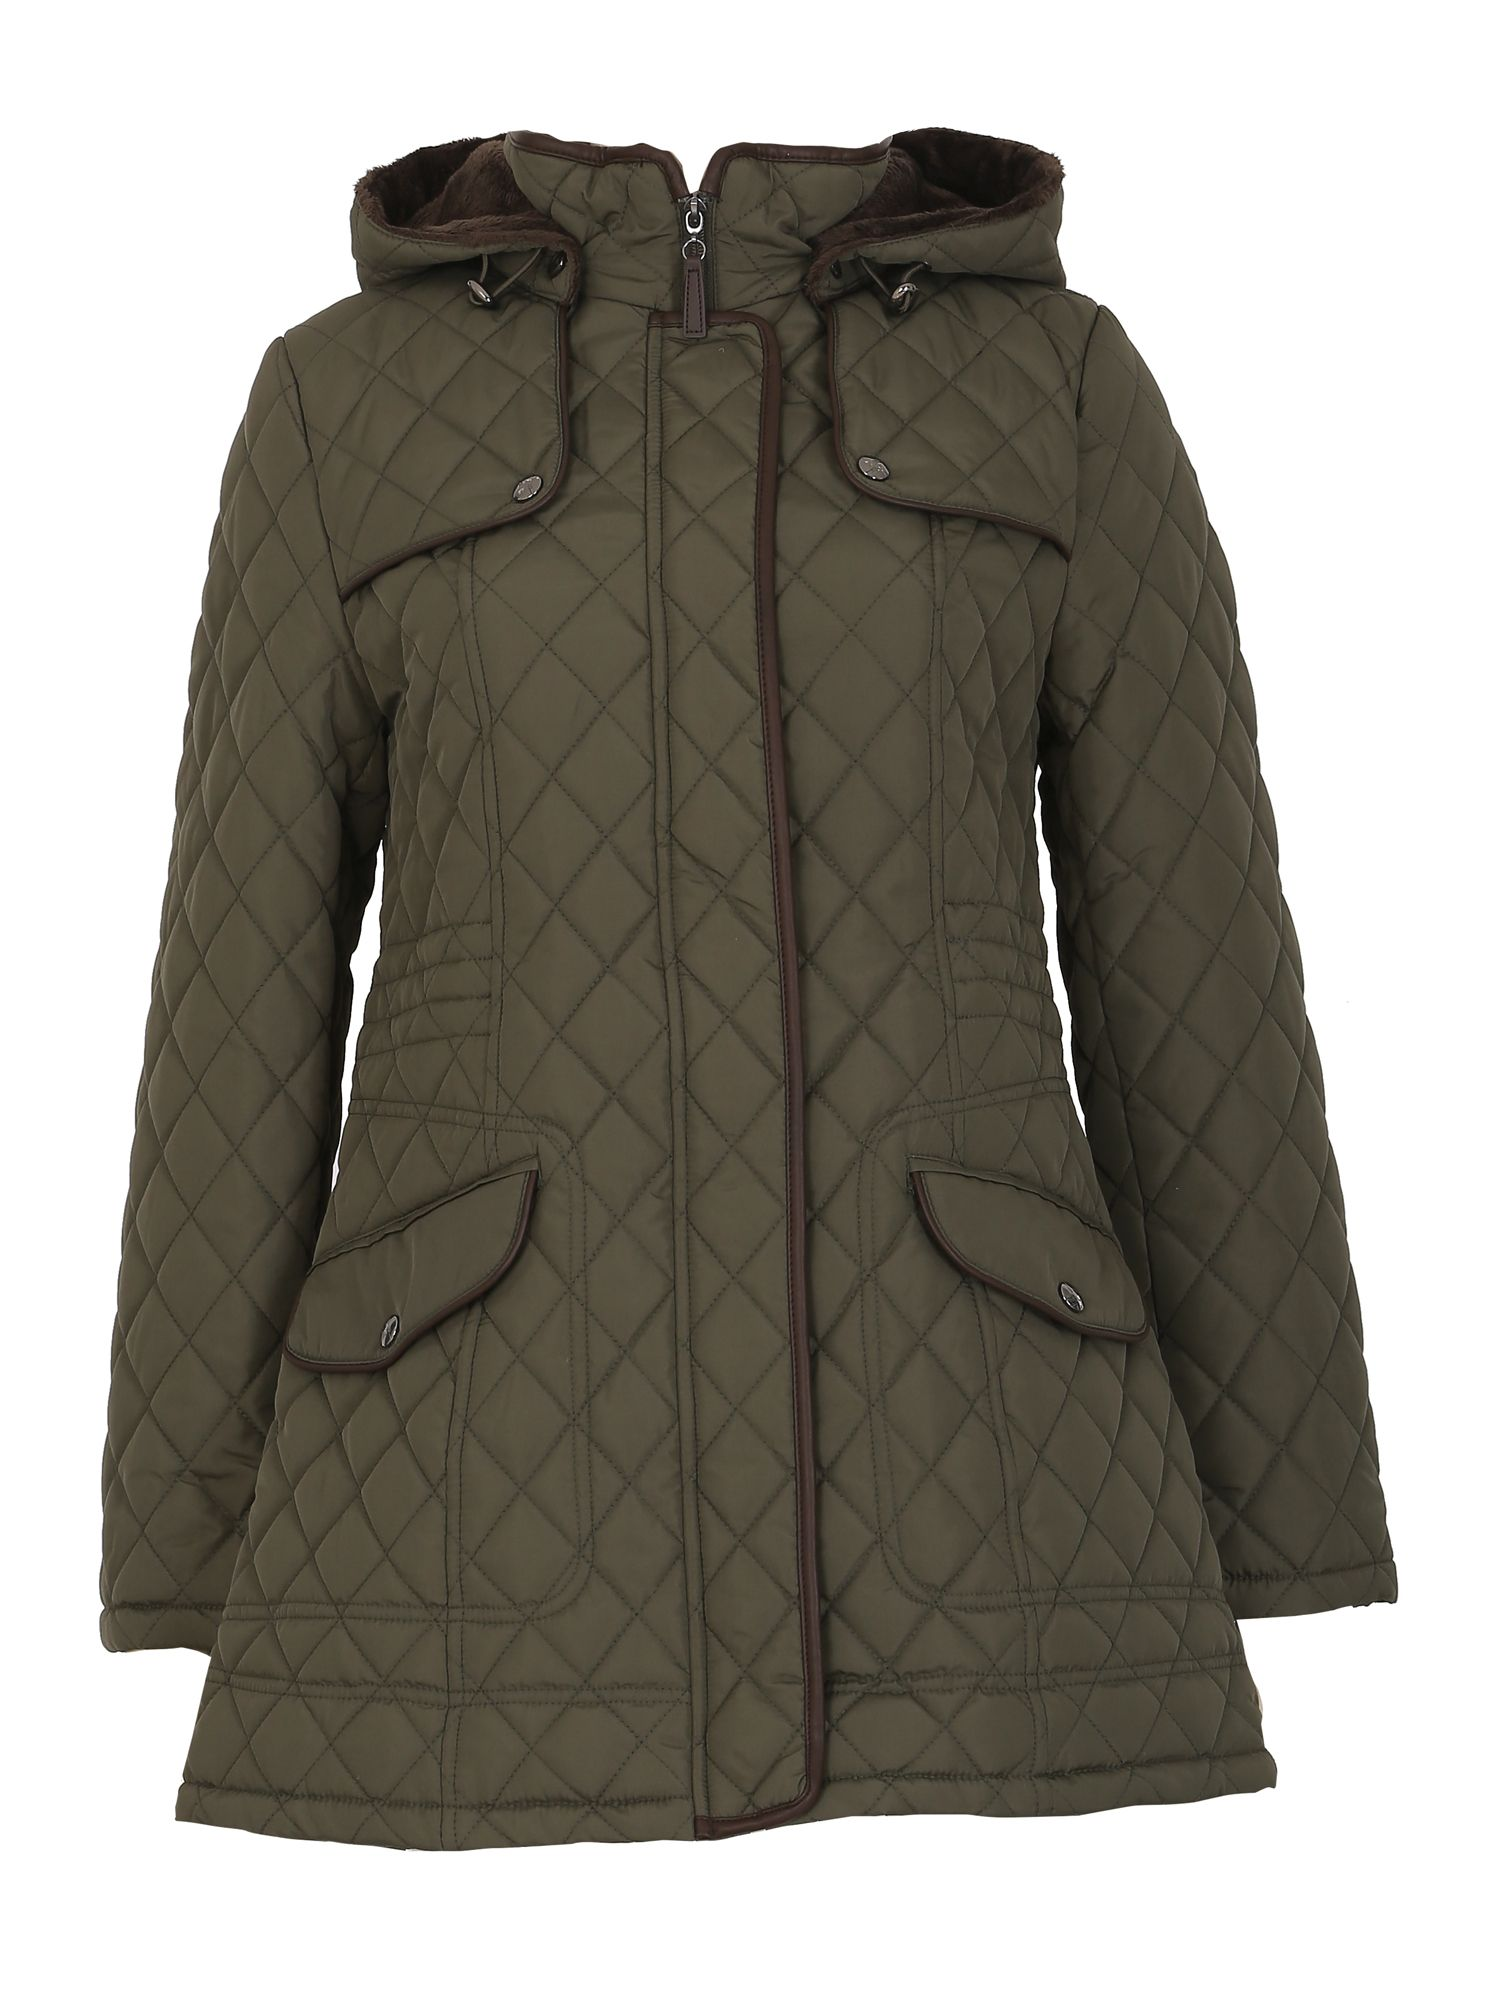 David Barry Luxury Detachable Hooded Jacket, Green